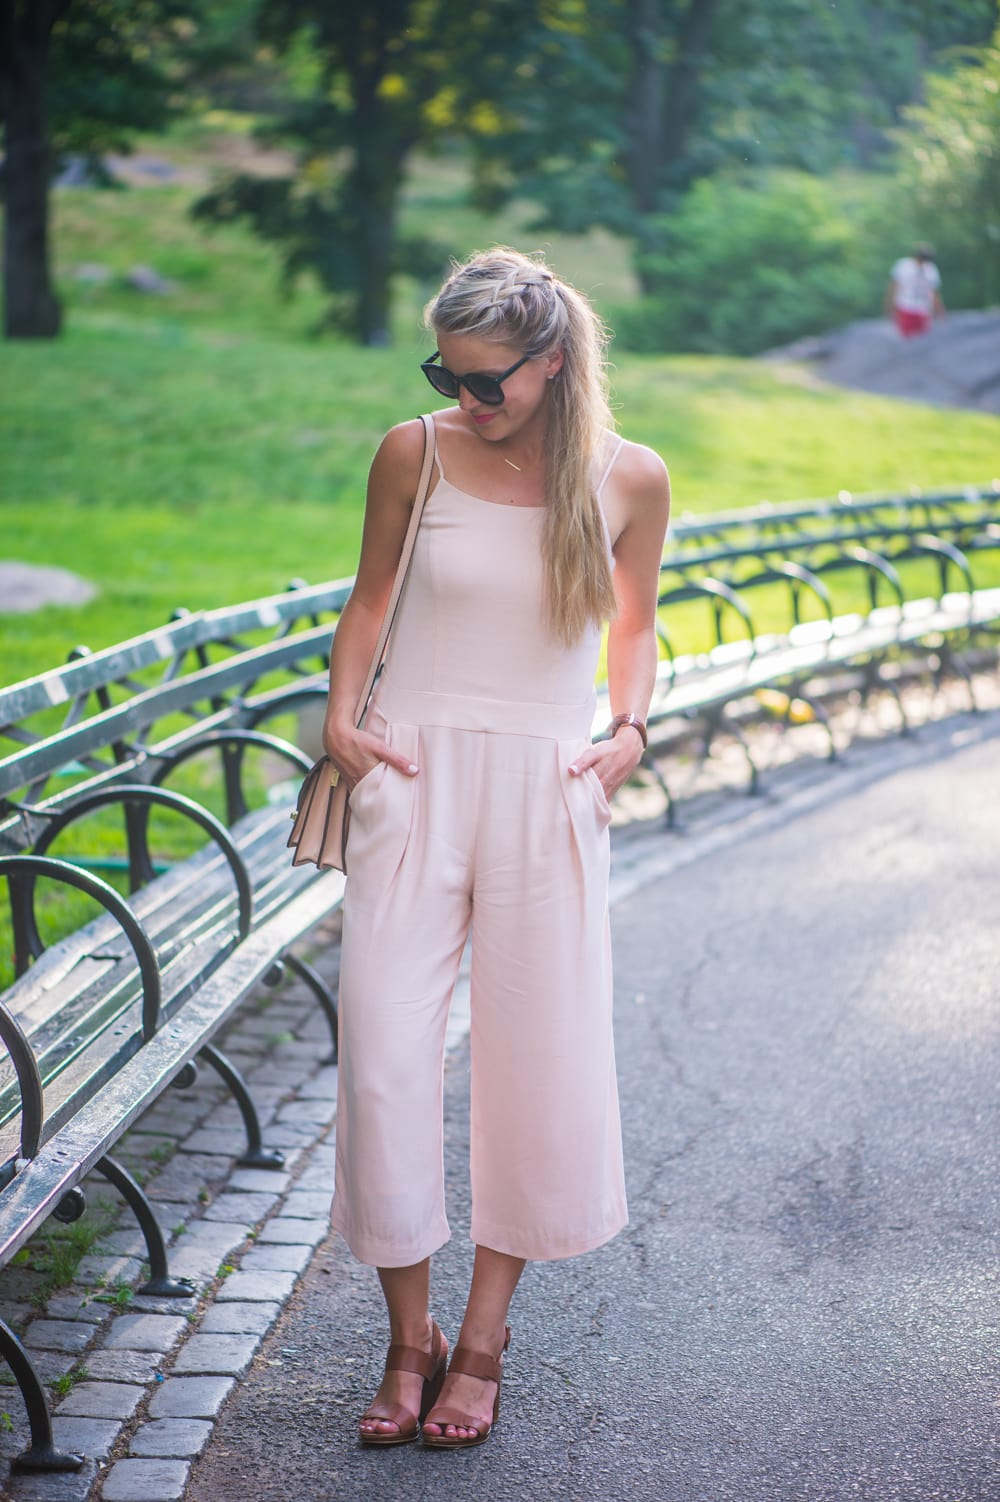 braided hairstyles, culottes